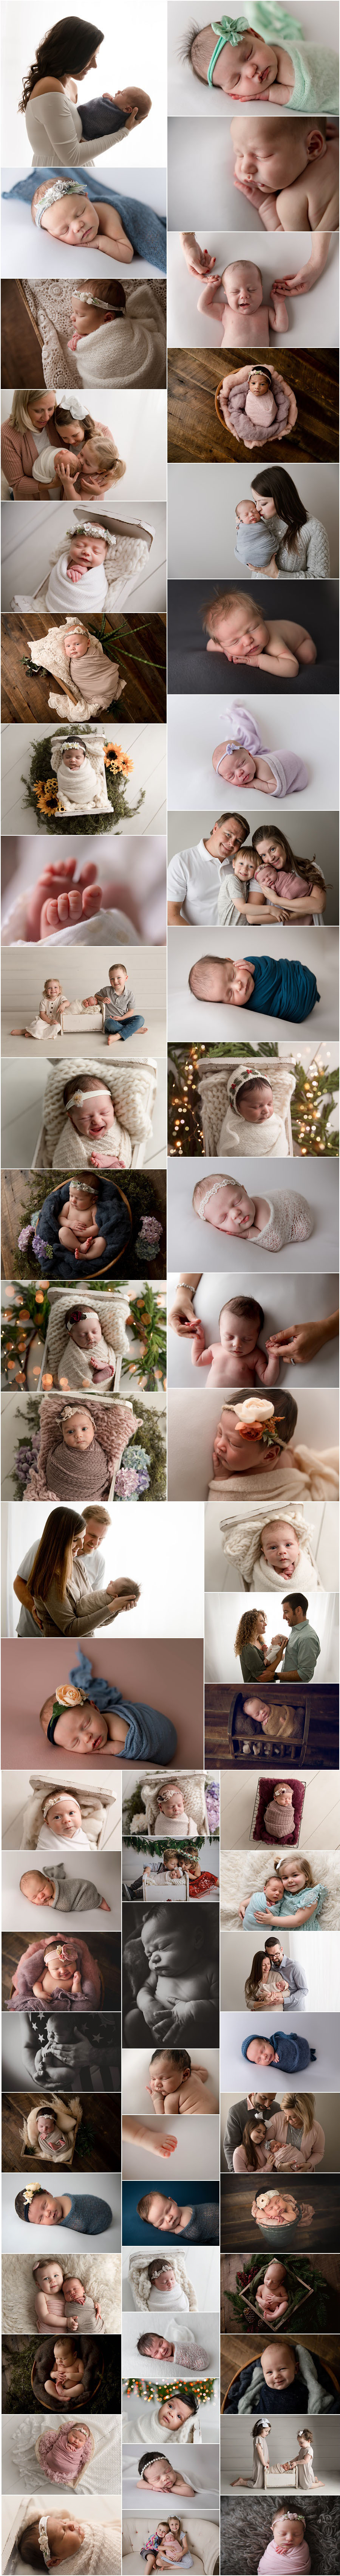 Indianapolis newborn photography - newborns from 2020 in the studio